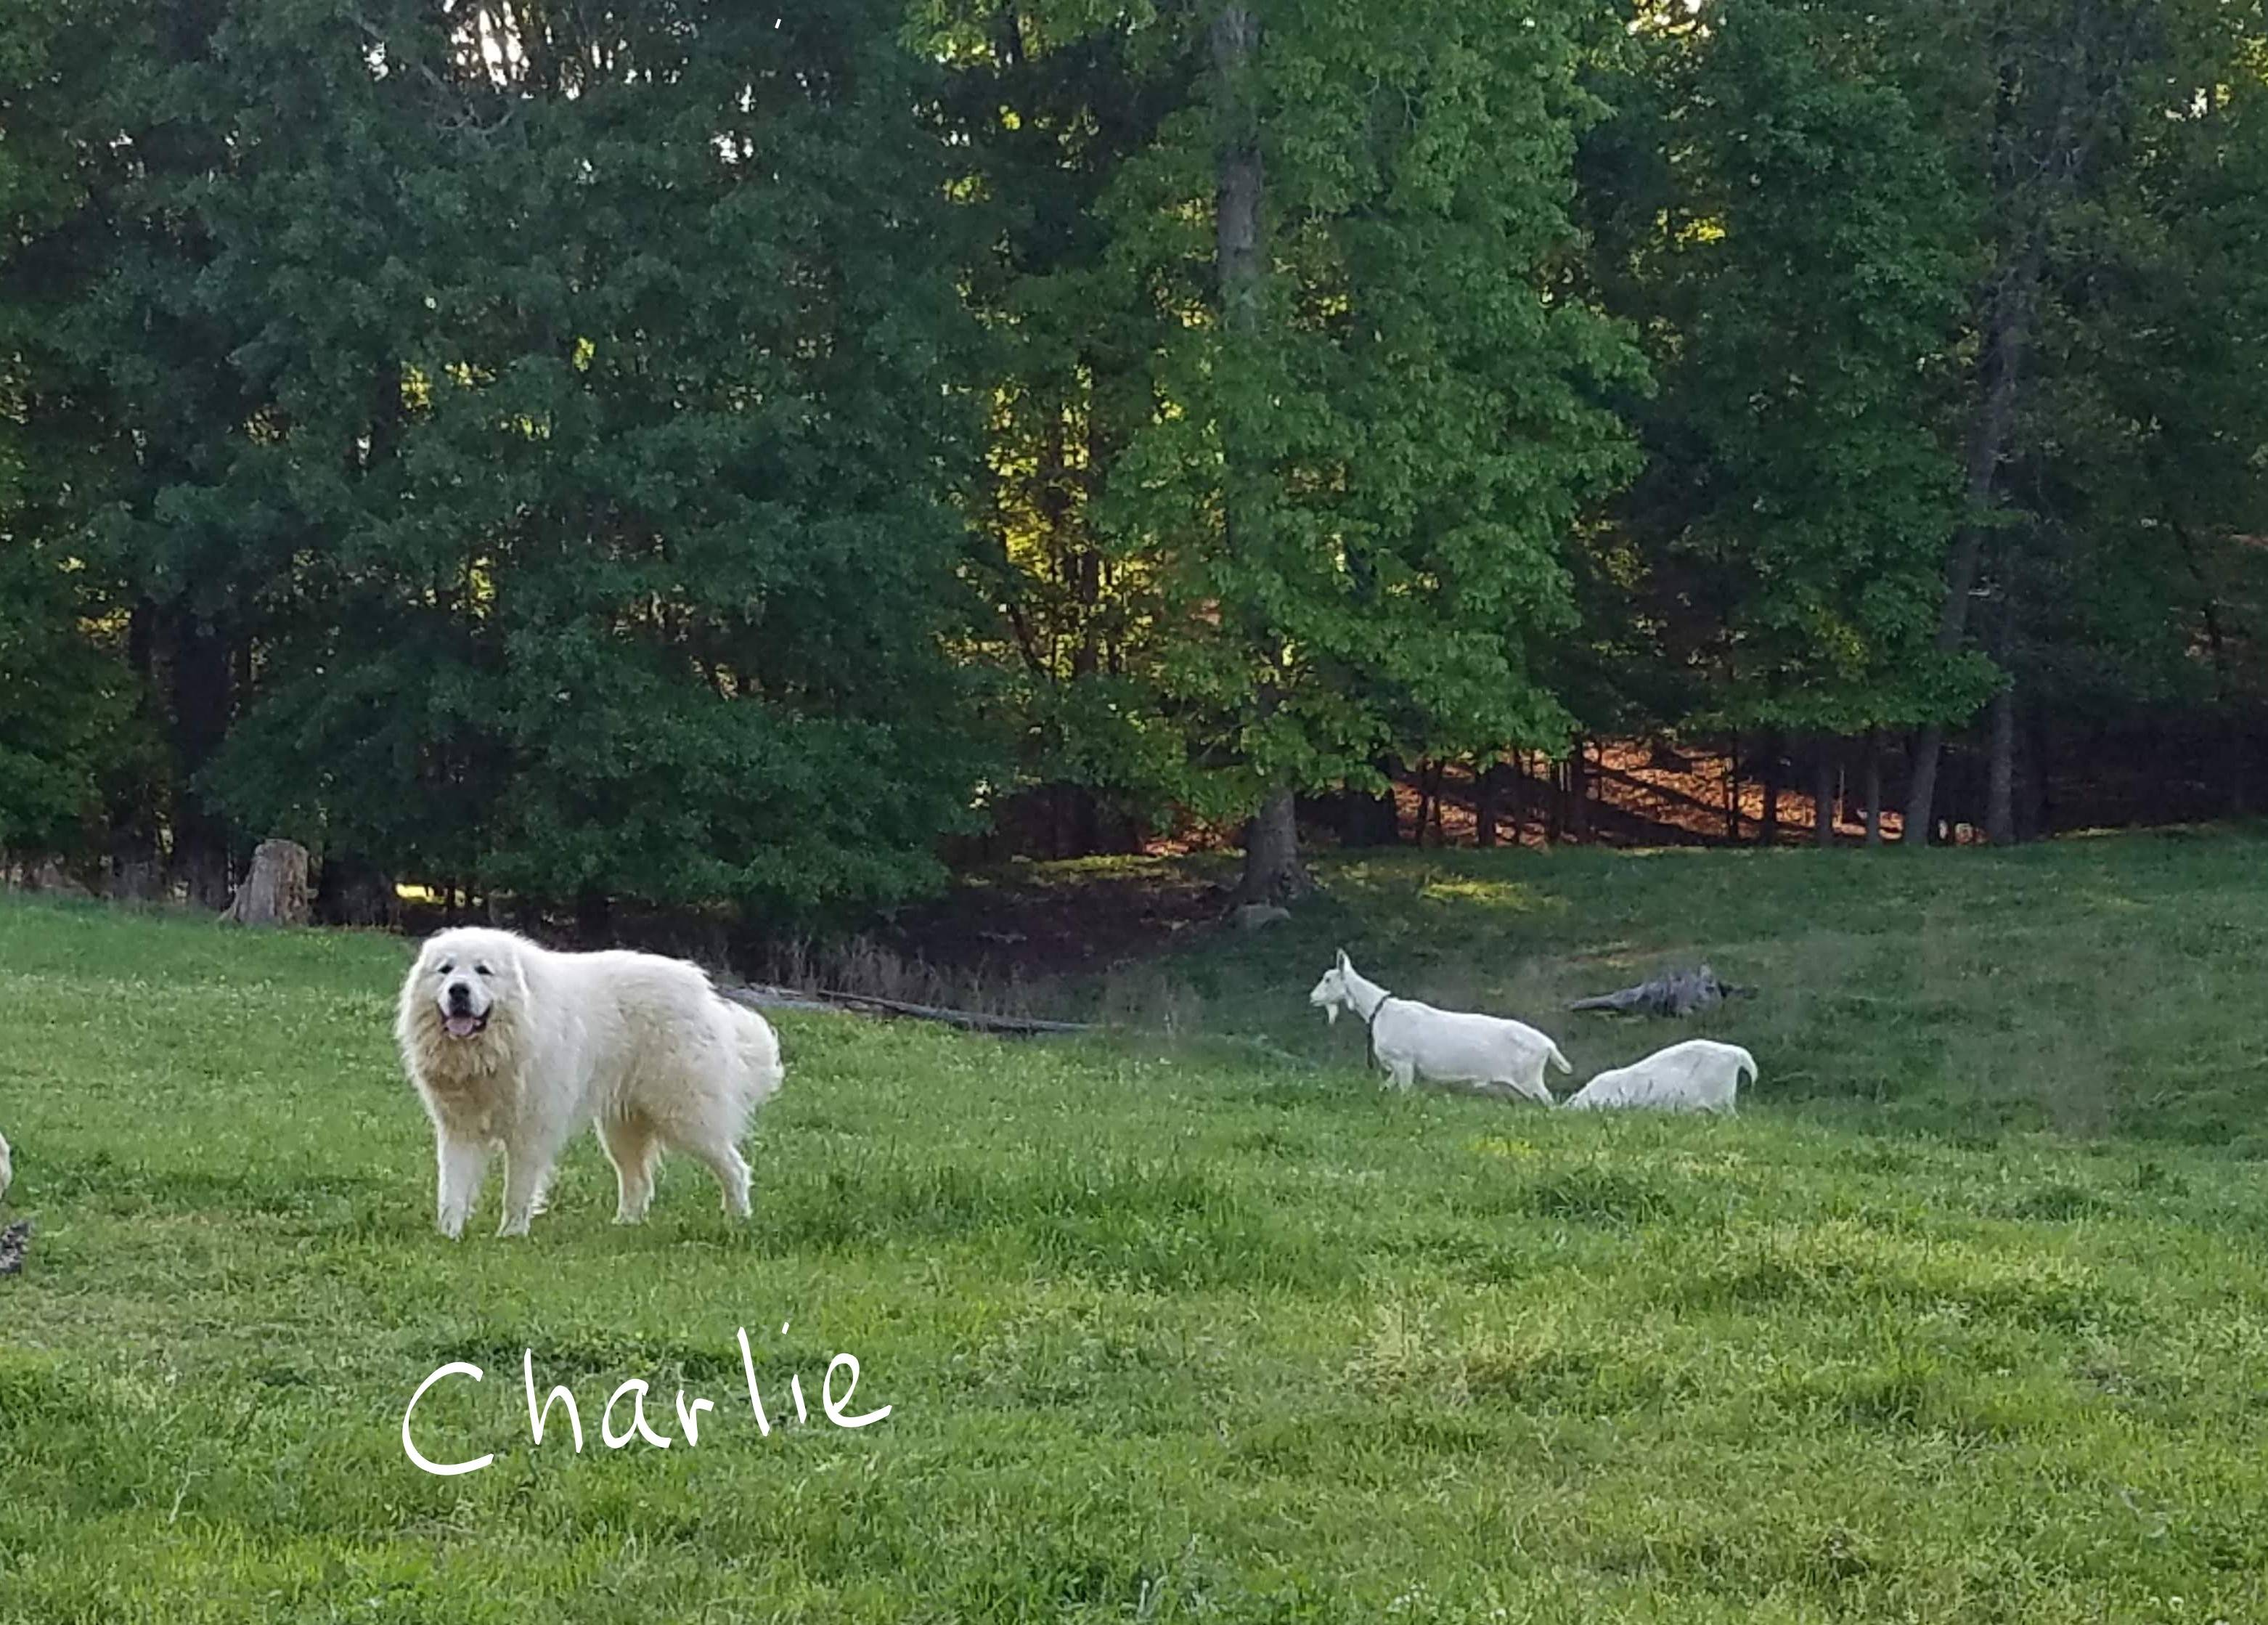 Charlie, sire